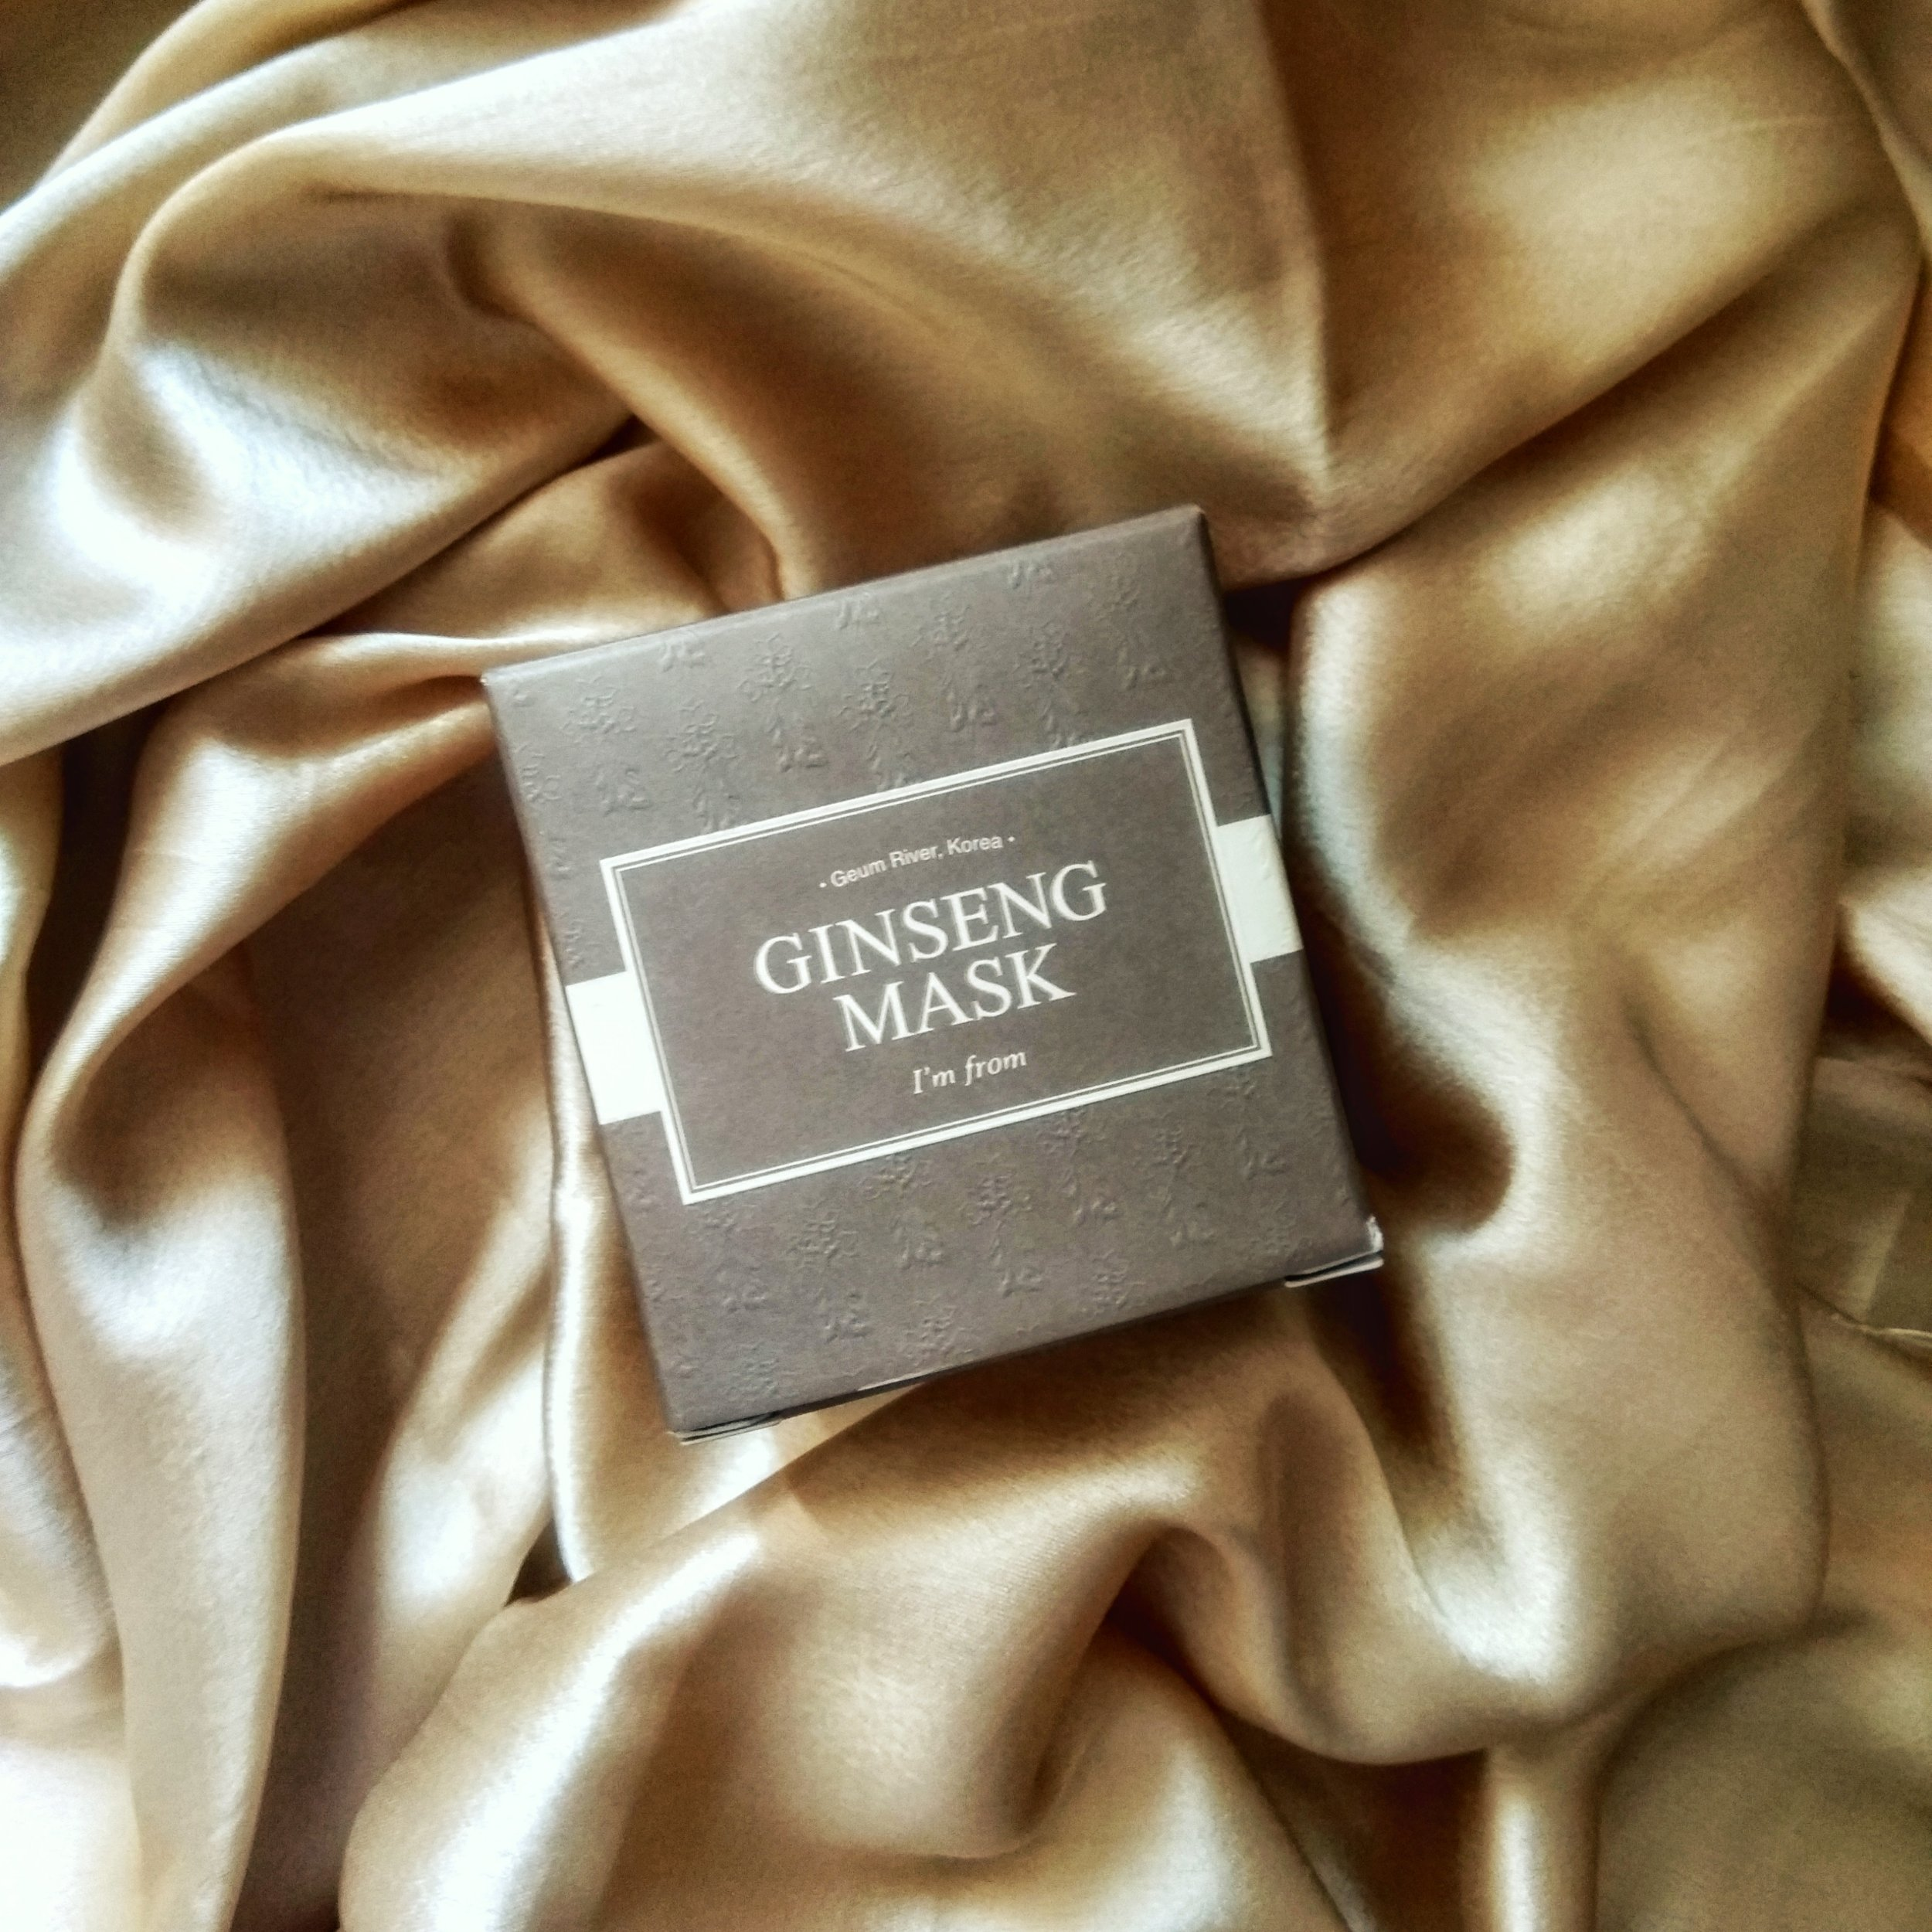 I'm From Ginseng Mask - Photo Three